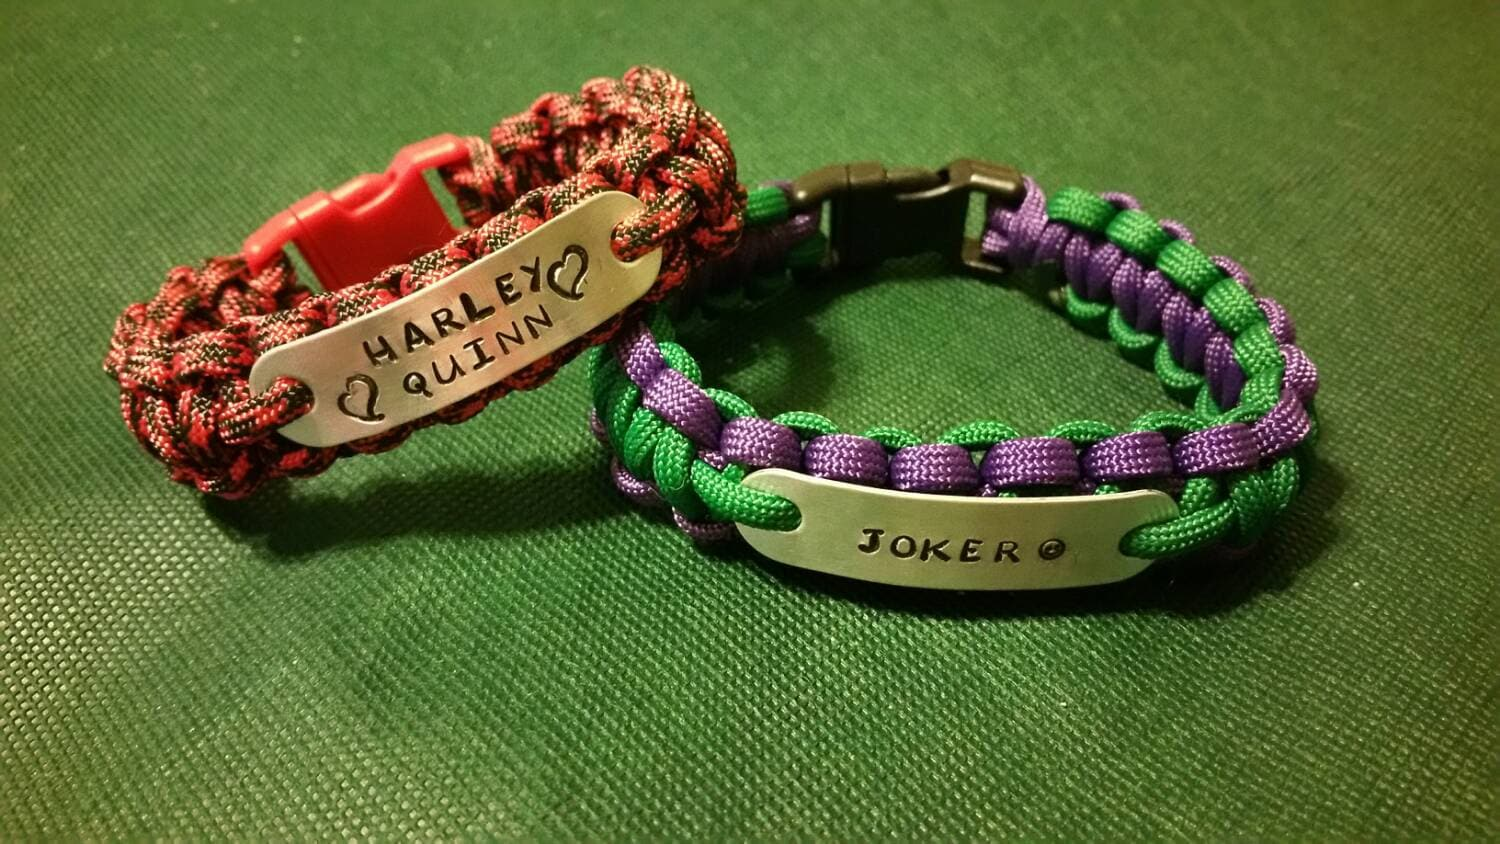 harley costume bracelets quinn similar like sir yes items accessories bracelet squad and suicide